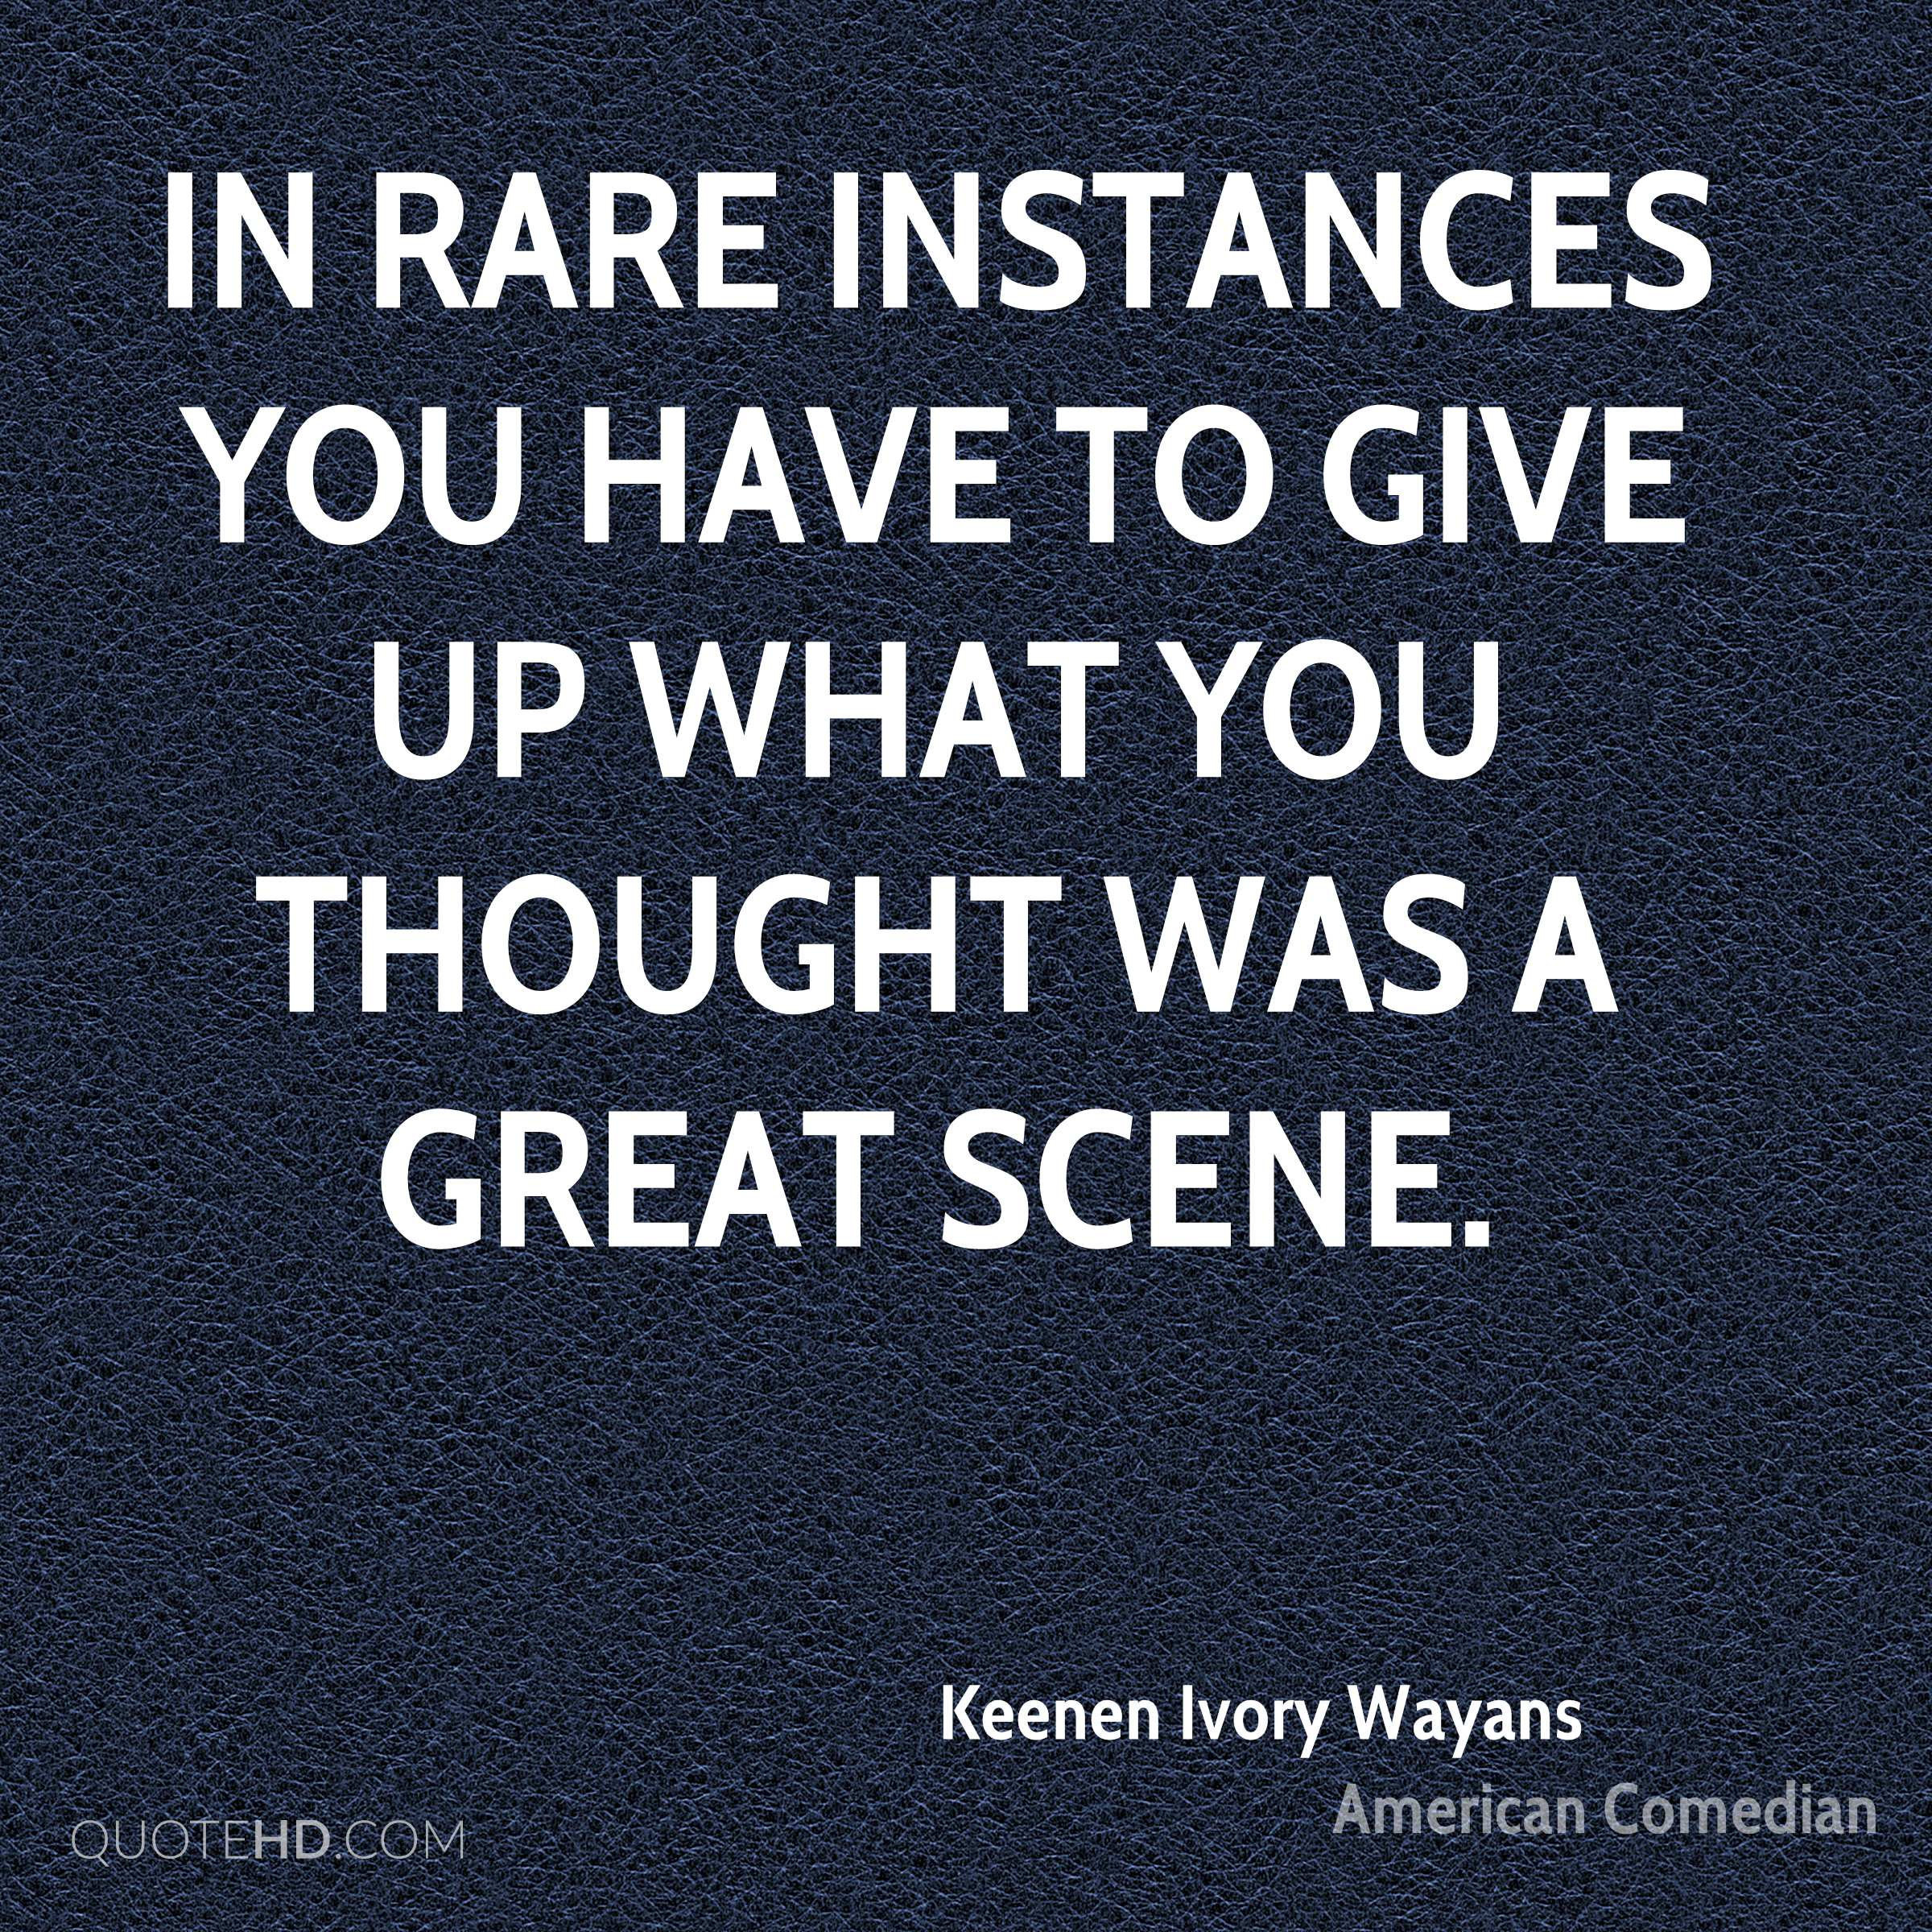 In rare instances you have to give up what you thought was a great scene.